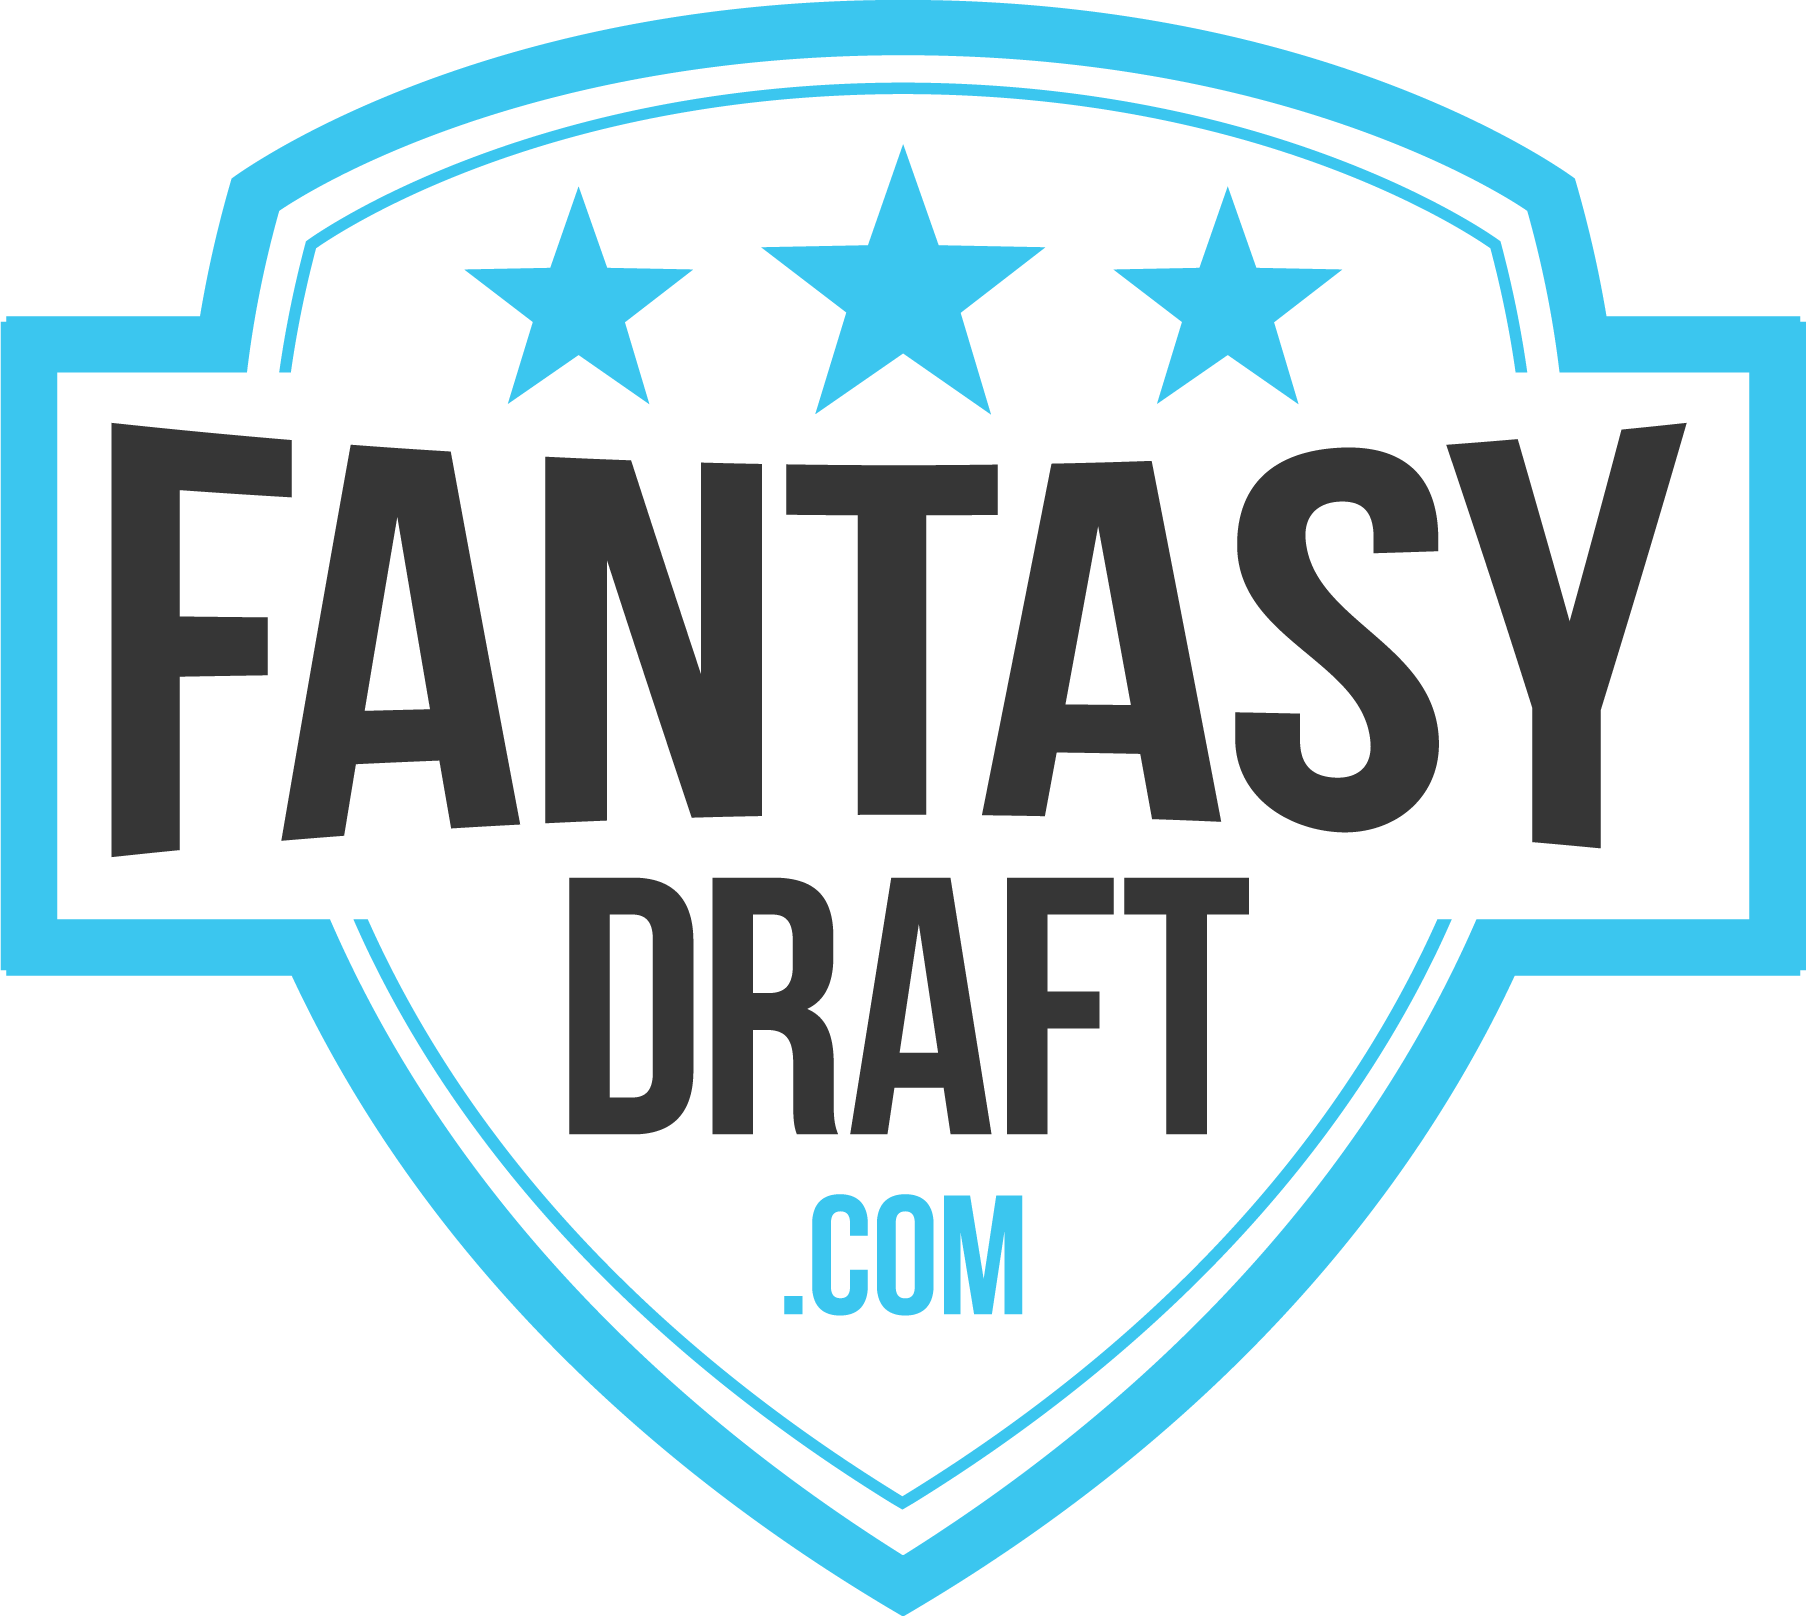 FantasyDraft's wider PayoutZone means that at least 25% of entries win in their featured guaranteed contests. Up to $600 Deposit bonus for first time depositors.